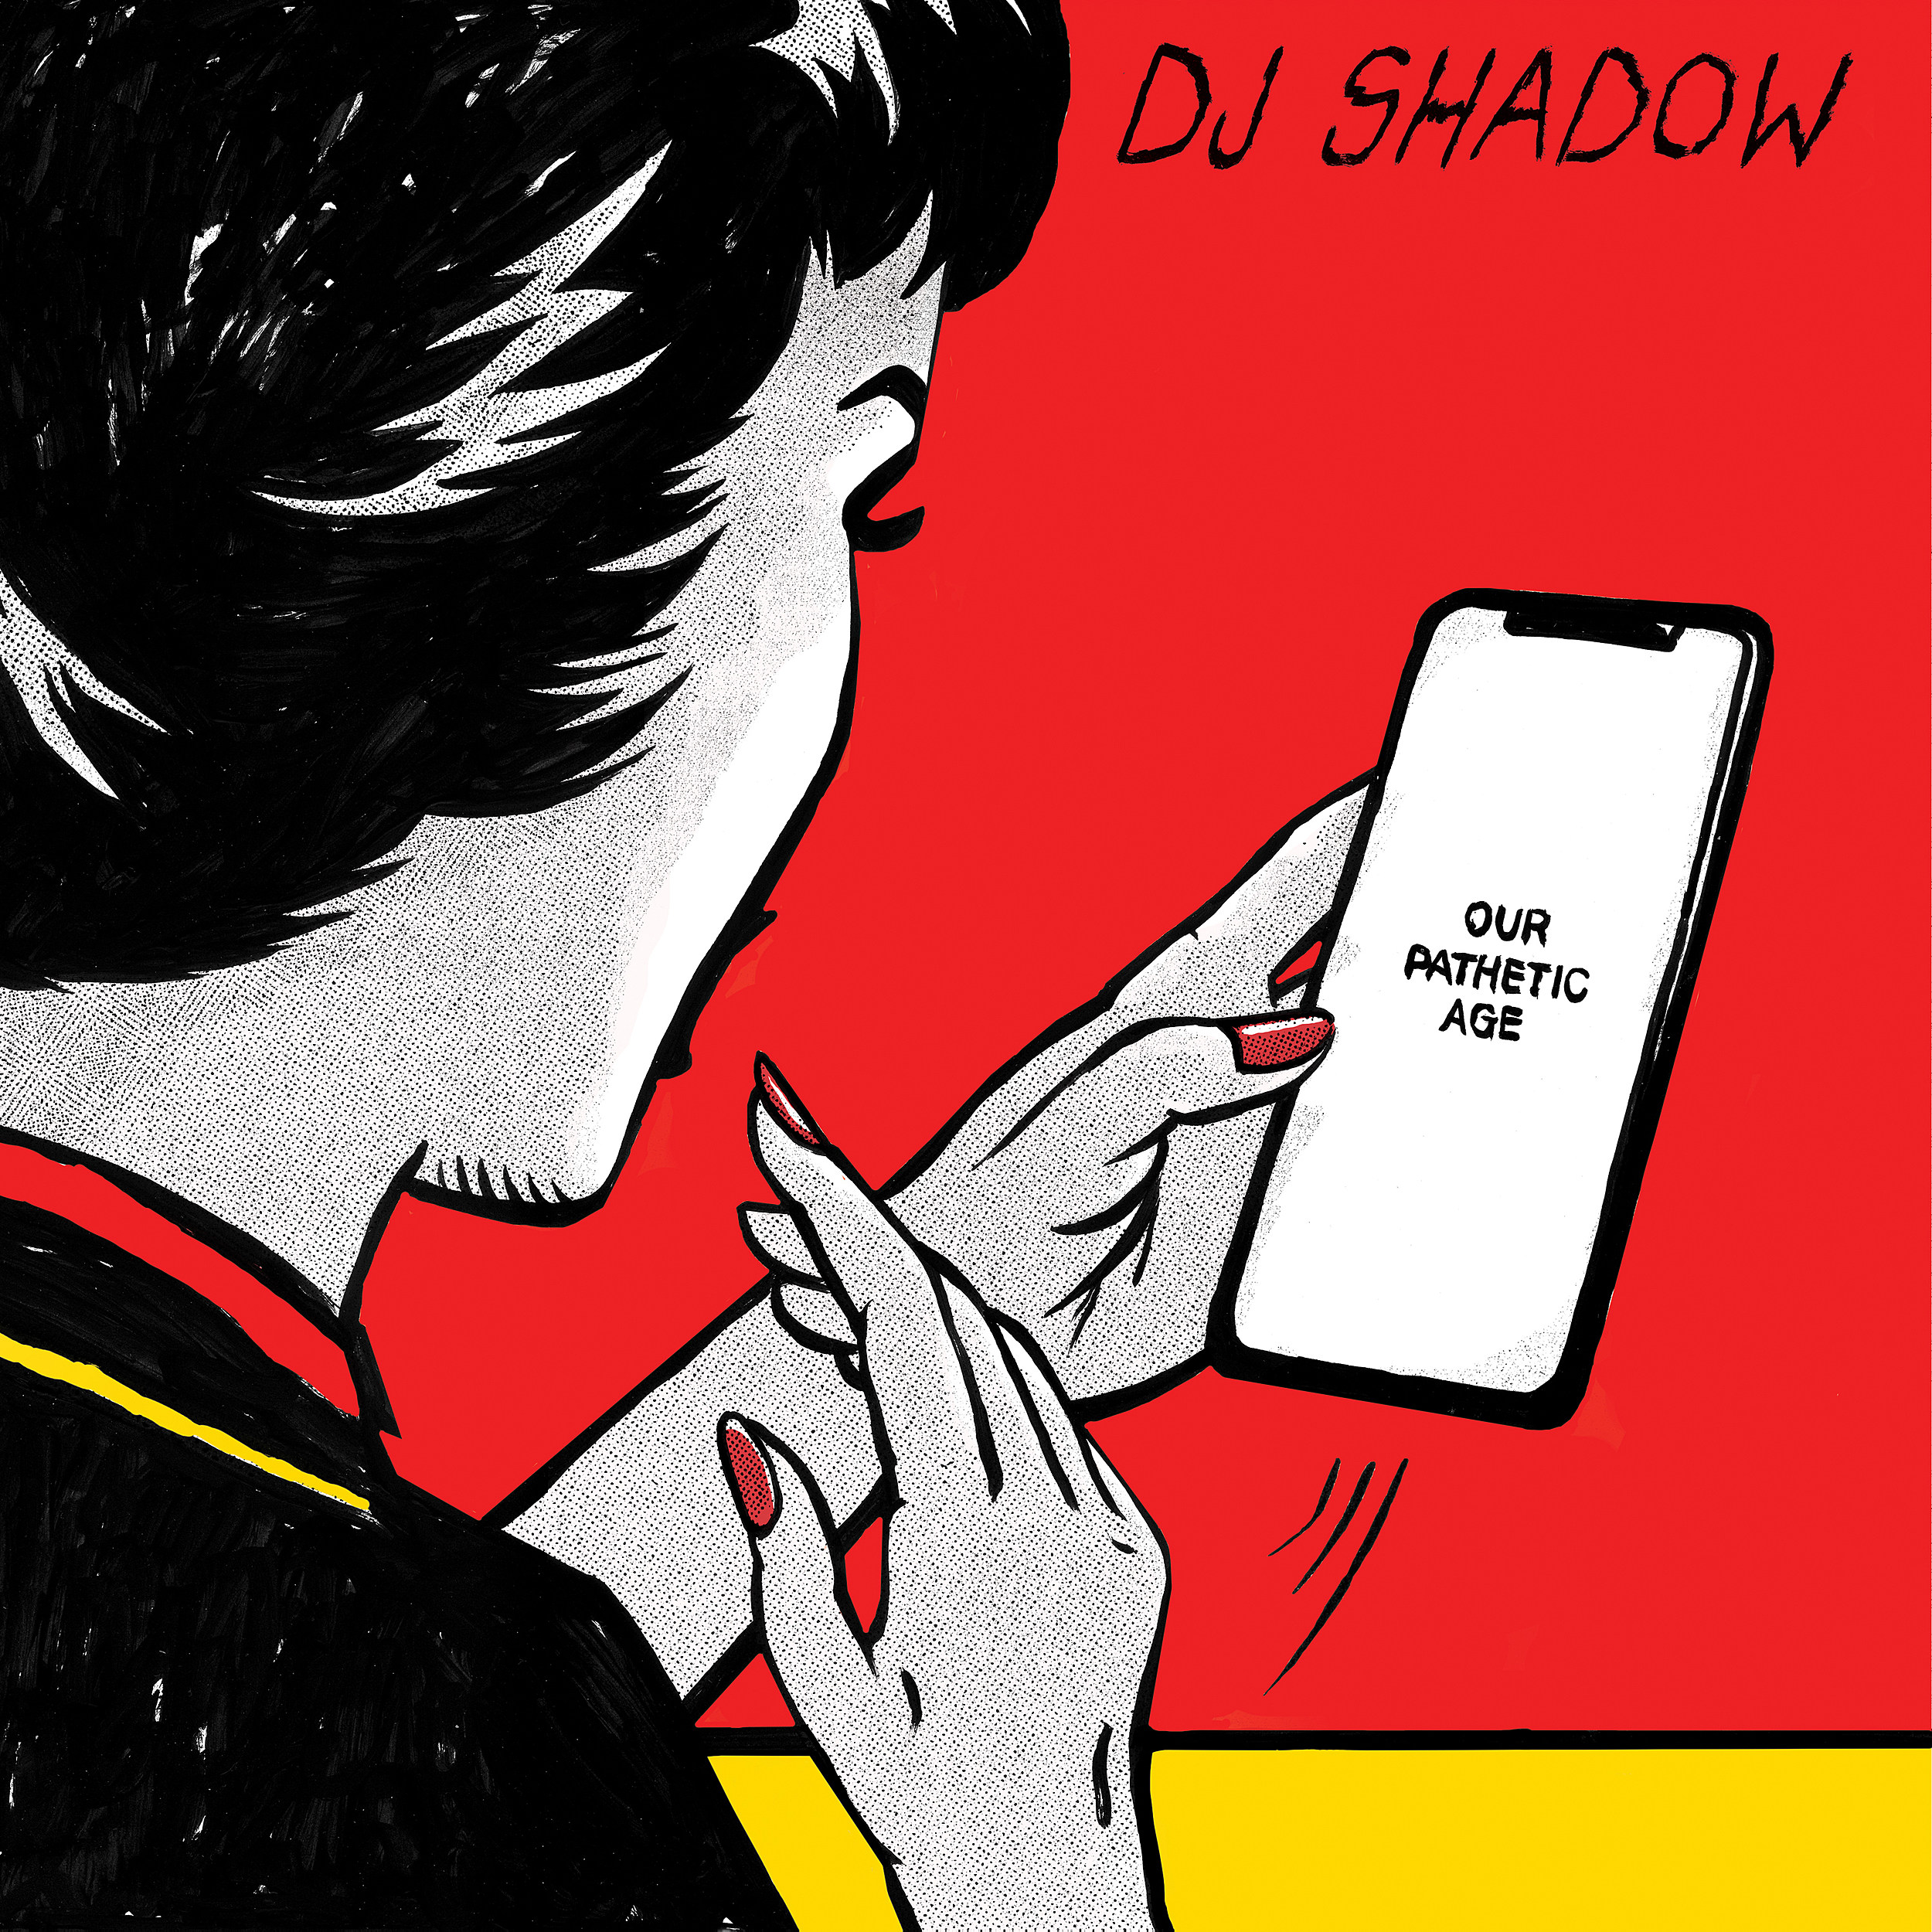 dj-shadow-our-pathetic-age